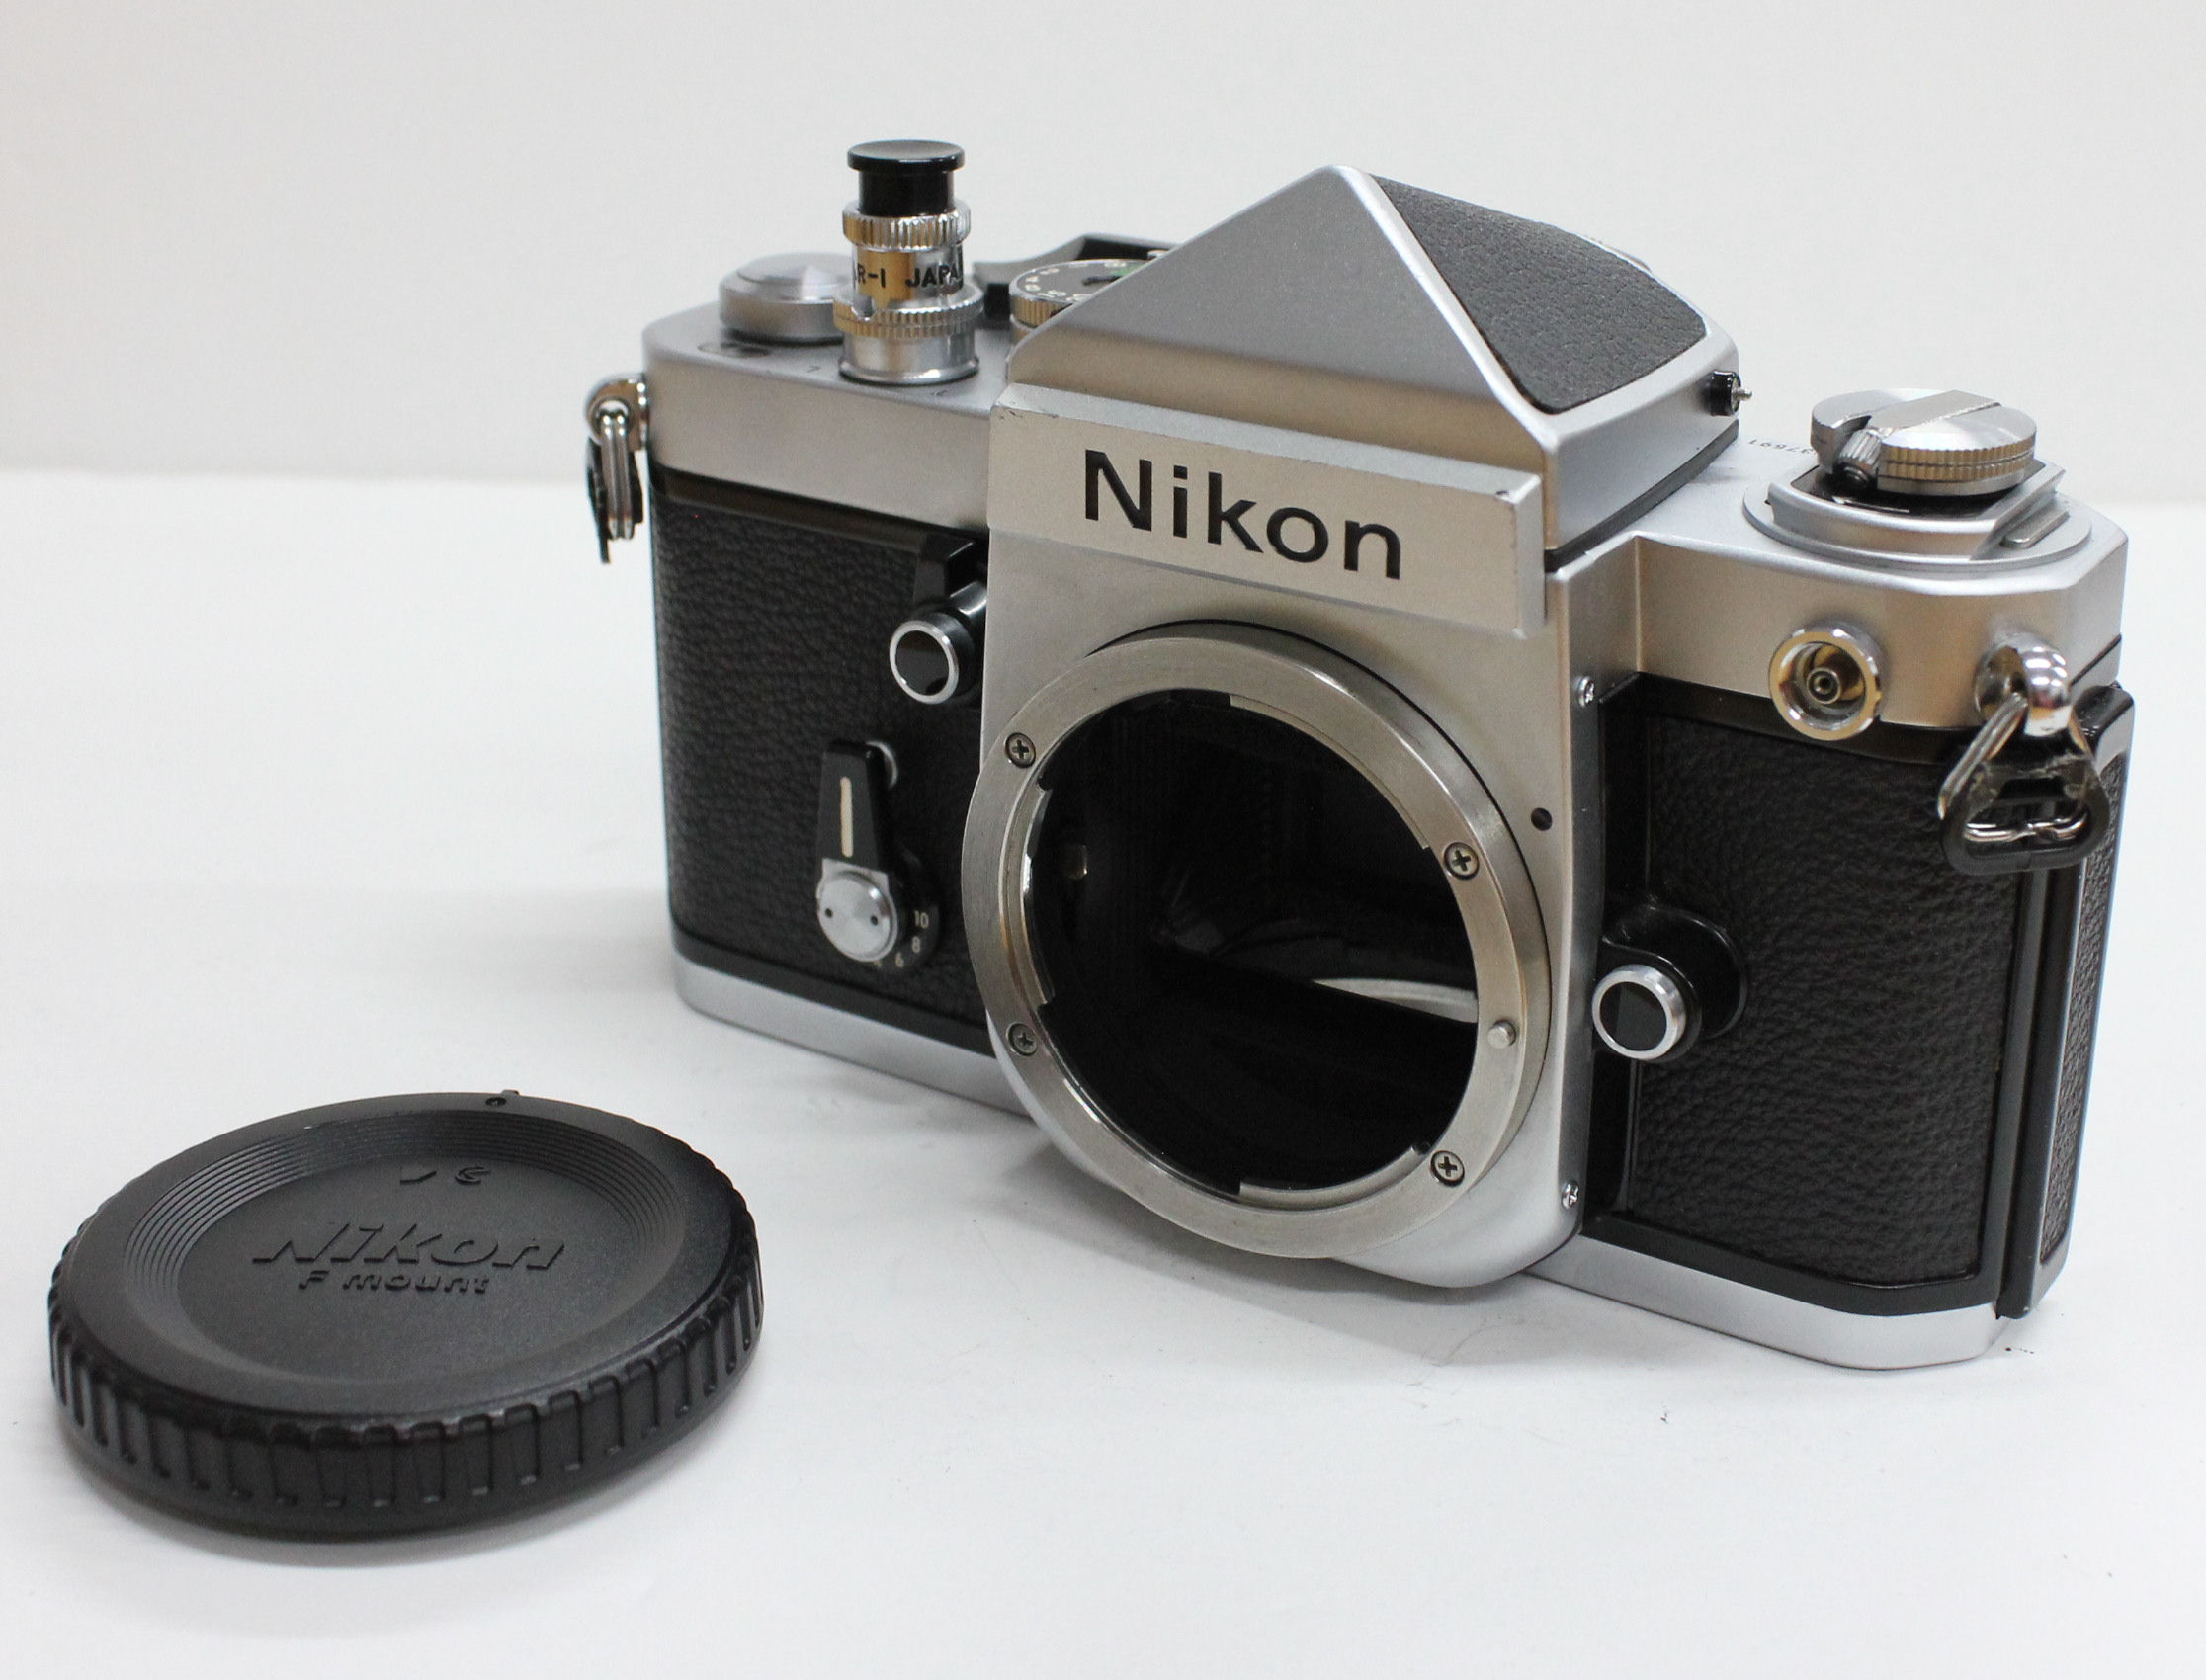 [Near Mint] Nikon F2 Eye Level 35mm SLR Film Camera w/ DE-1 View Finder S/N 803** from Japan